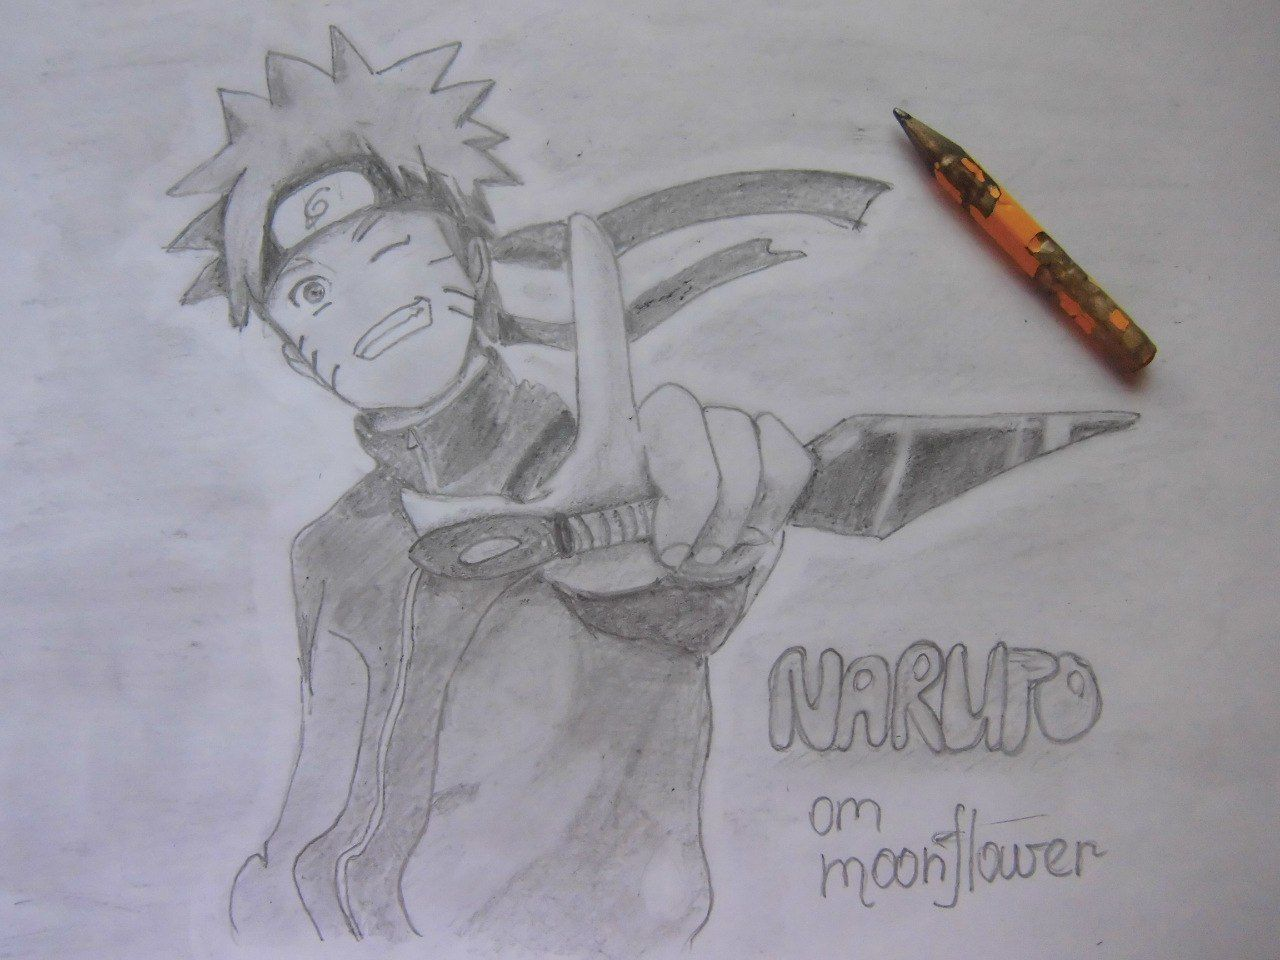 How to draw Naruto with a pencil on paper